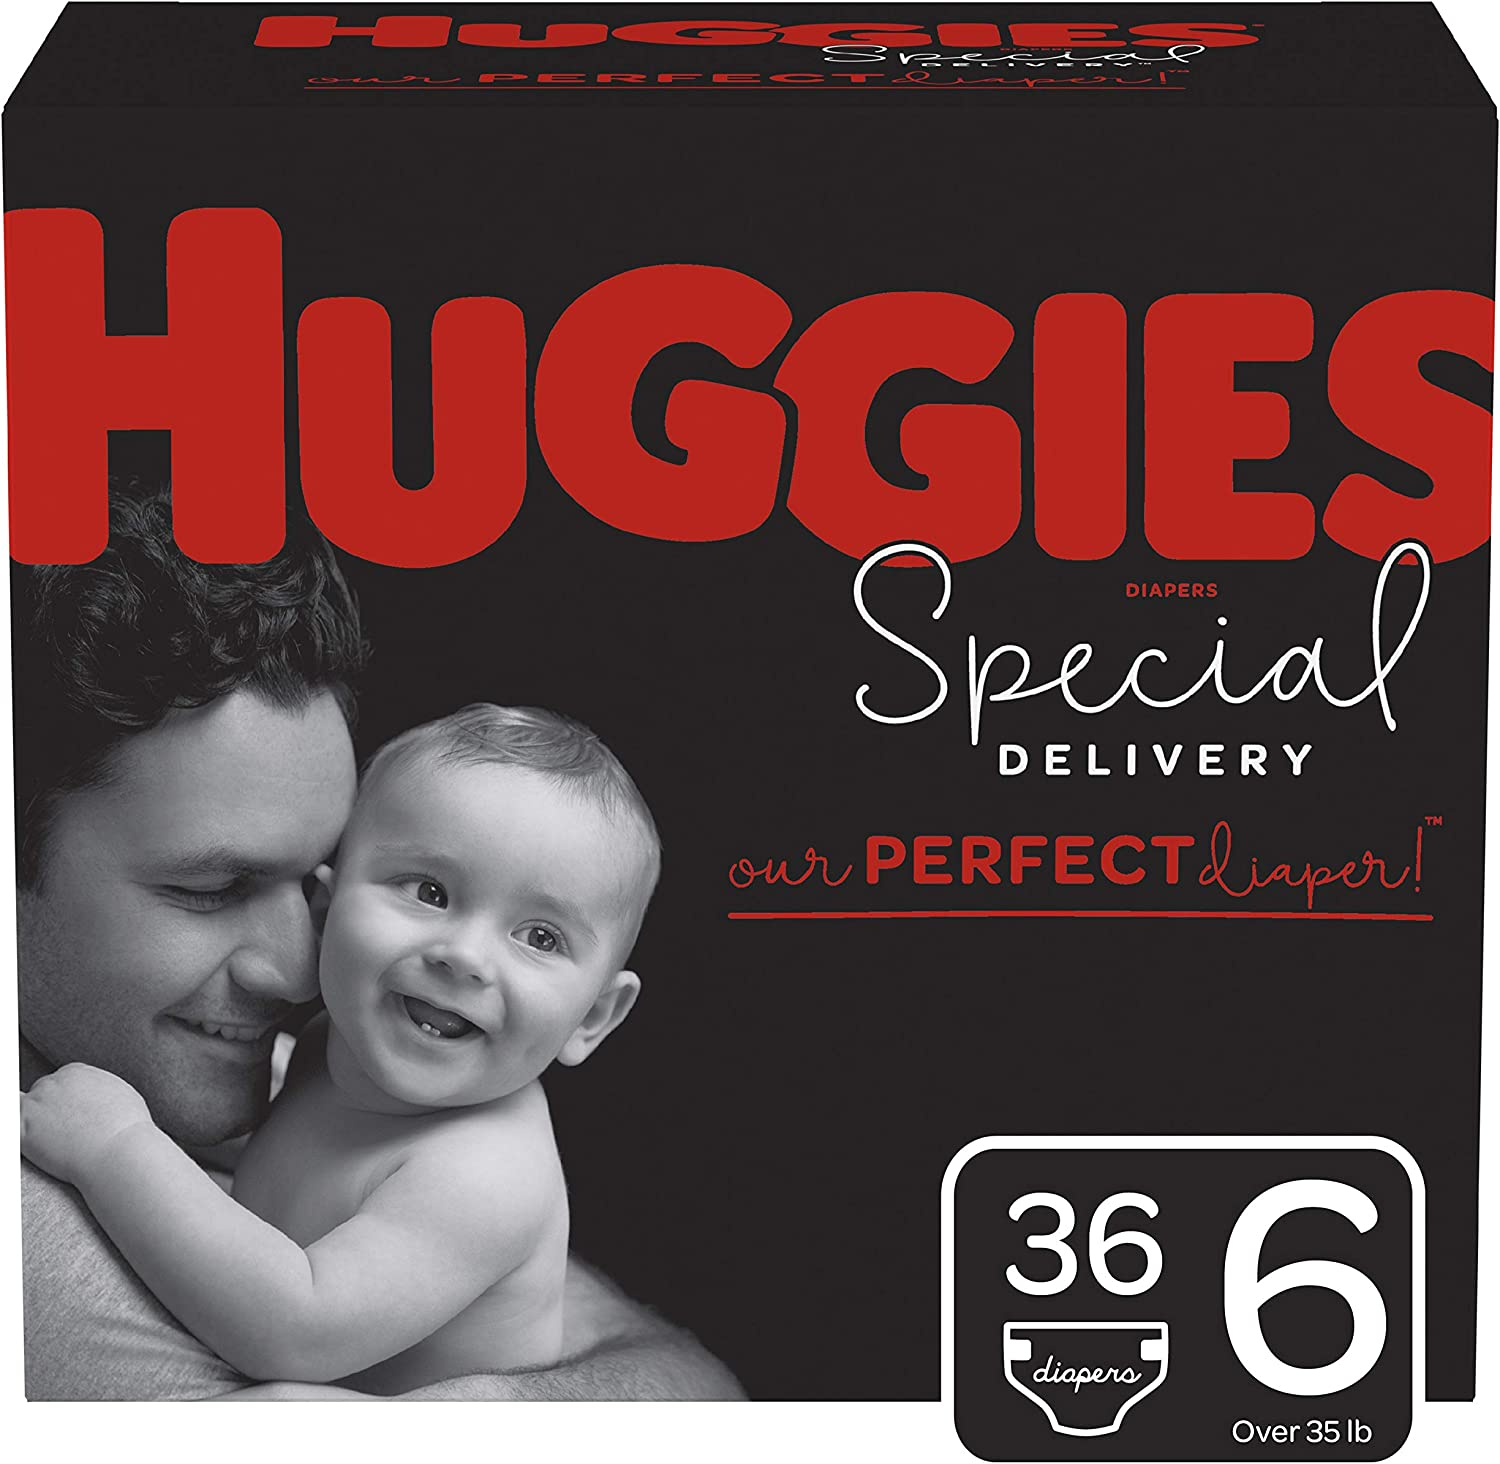 Huggies Special Delivery Hypoallergenic Baby Diapers, Size 6, 36 Ct